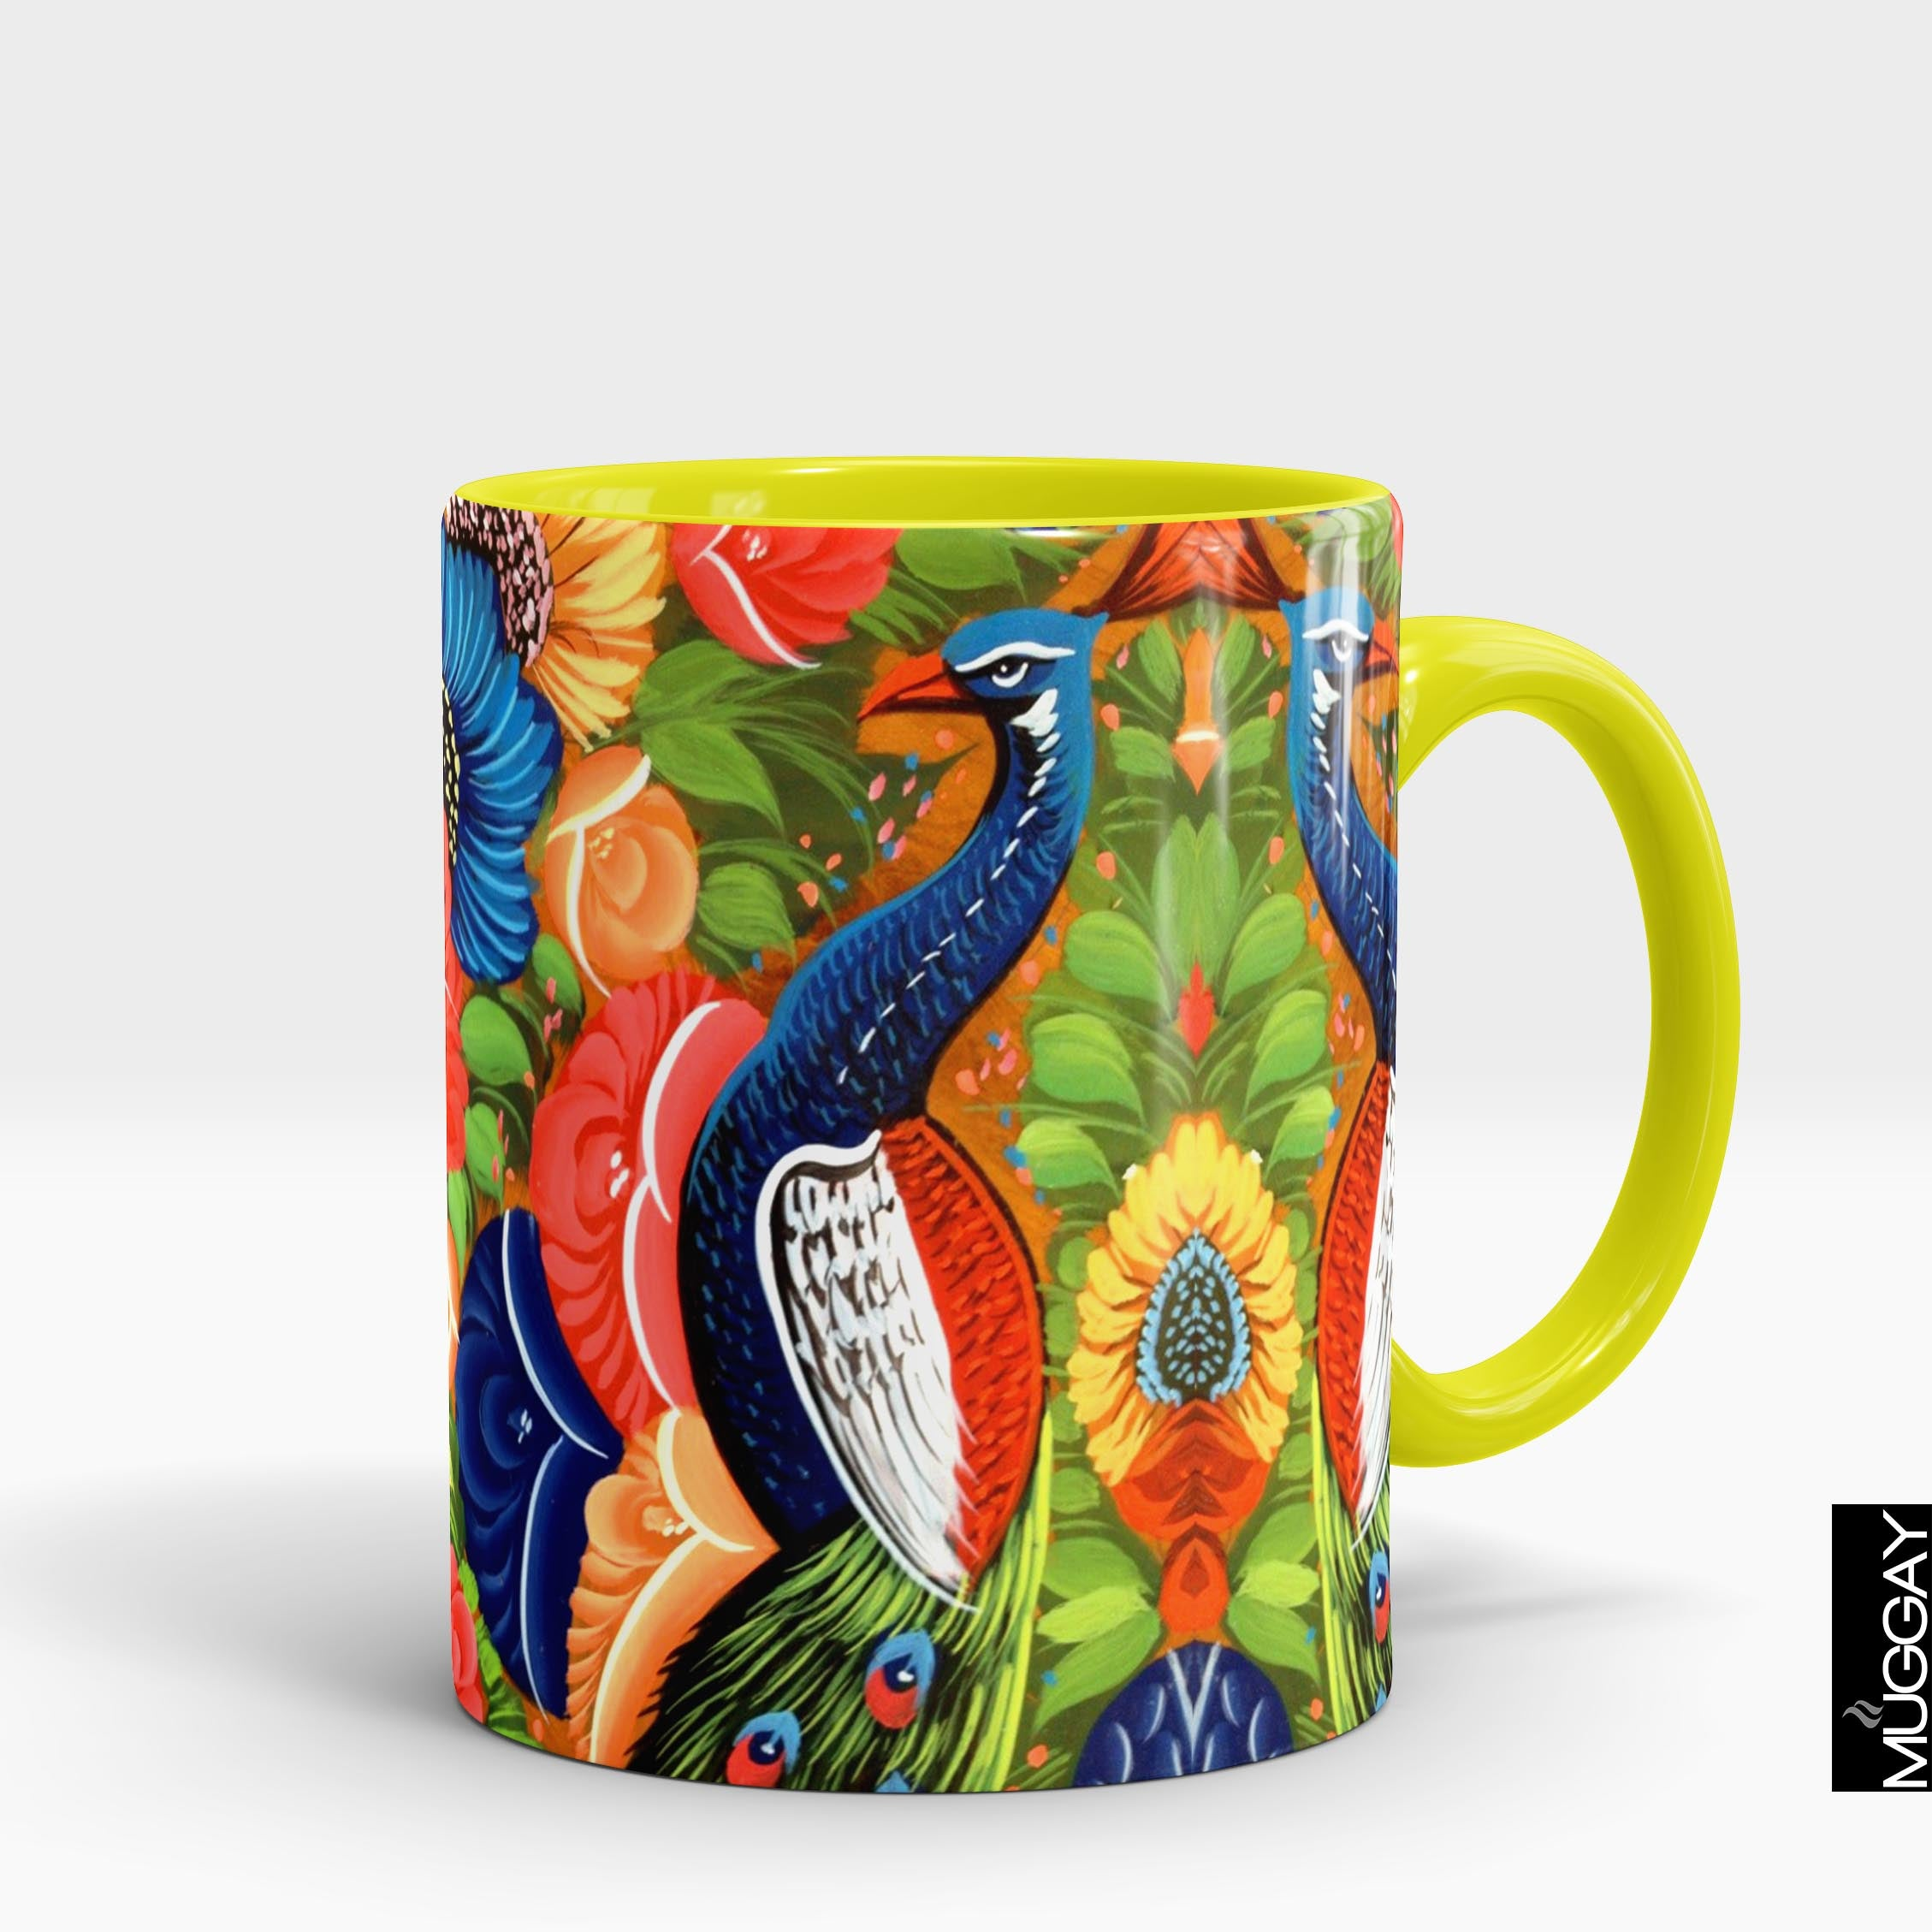 Truck Art Mugs - Pakisn Special - Truck Art